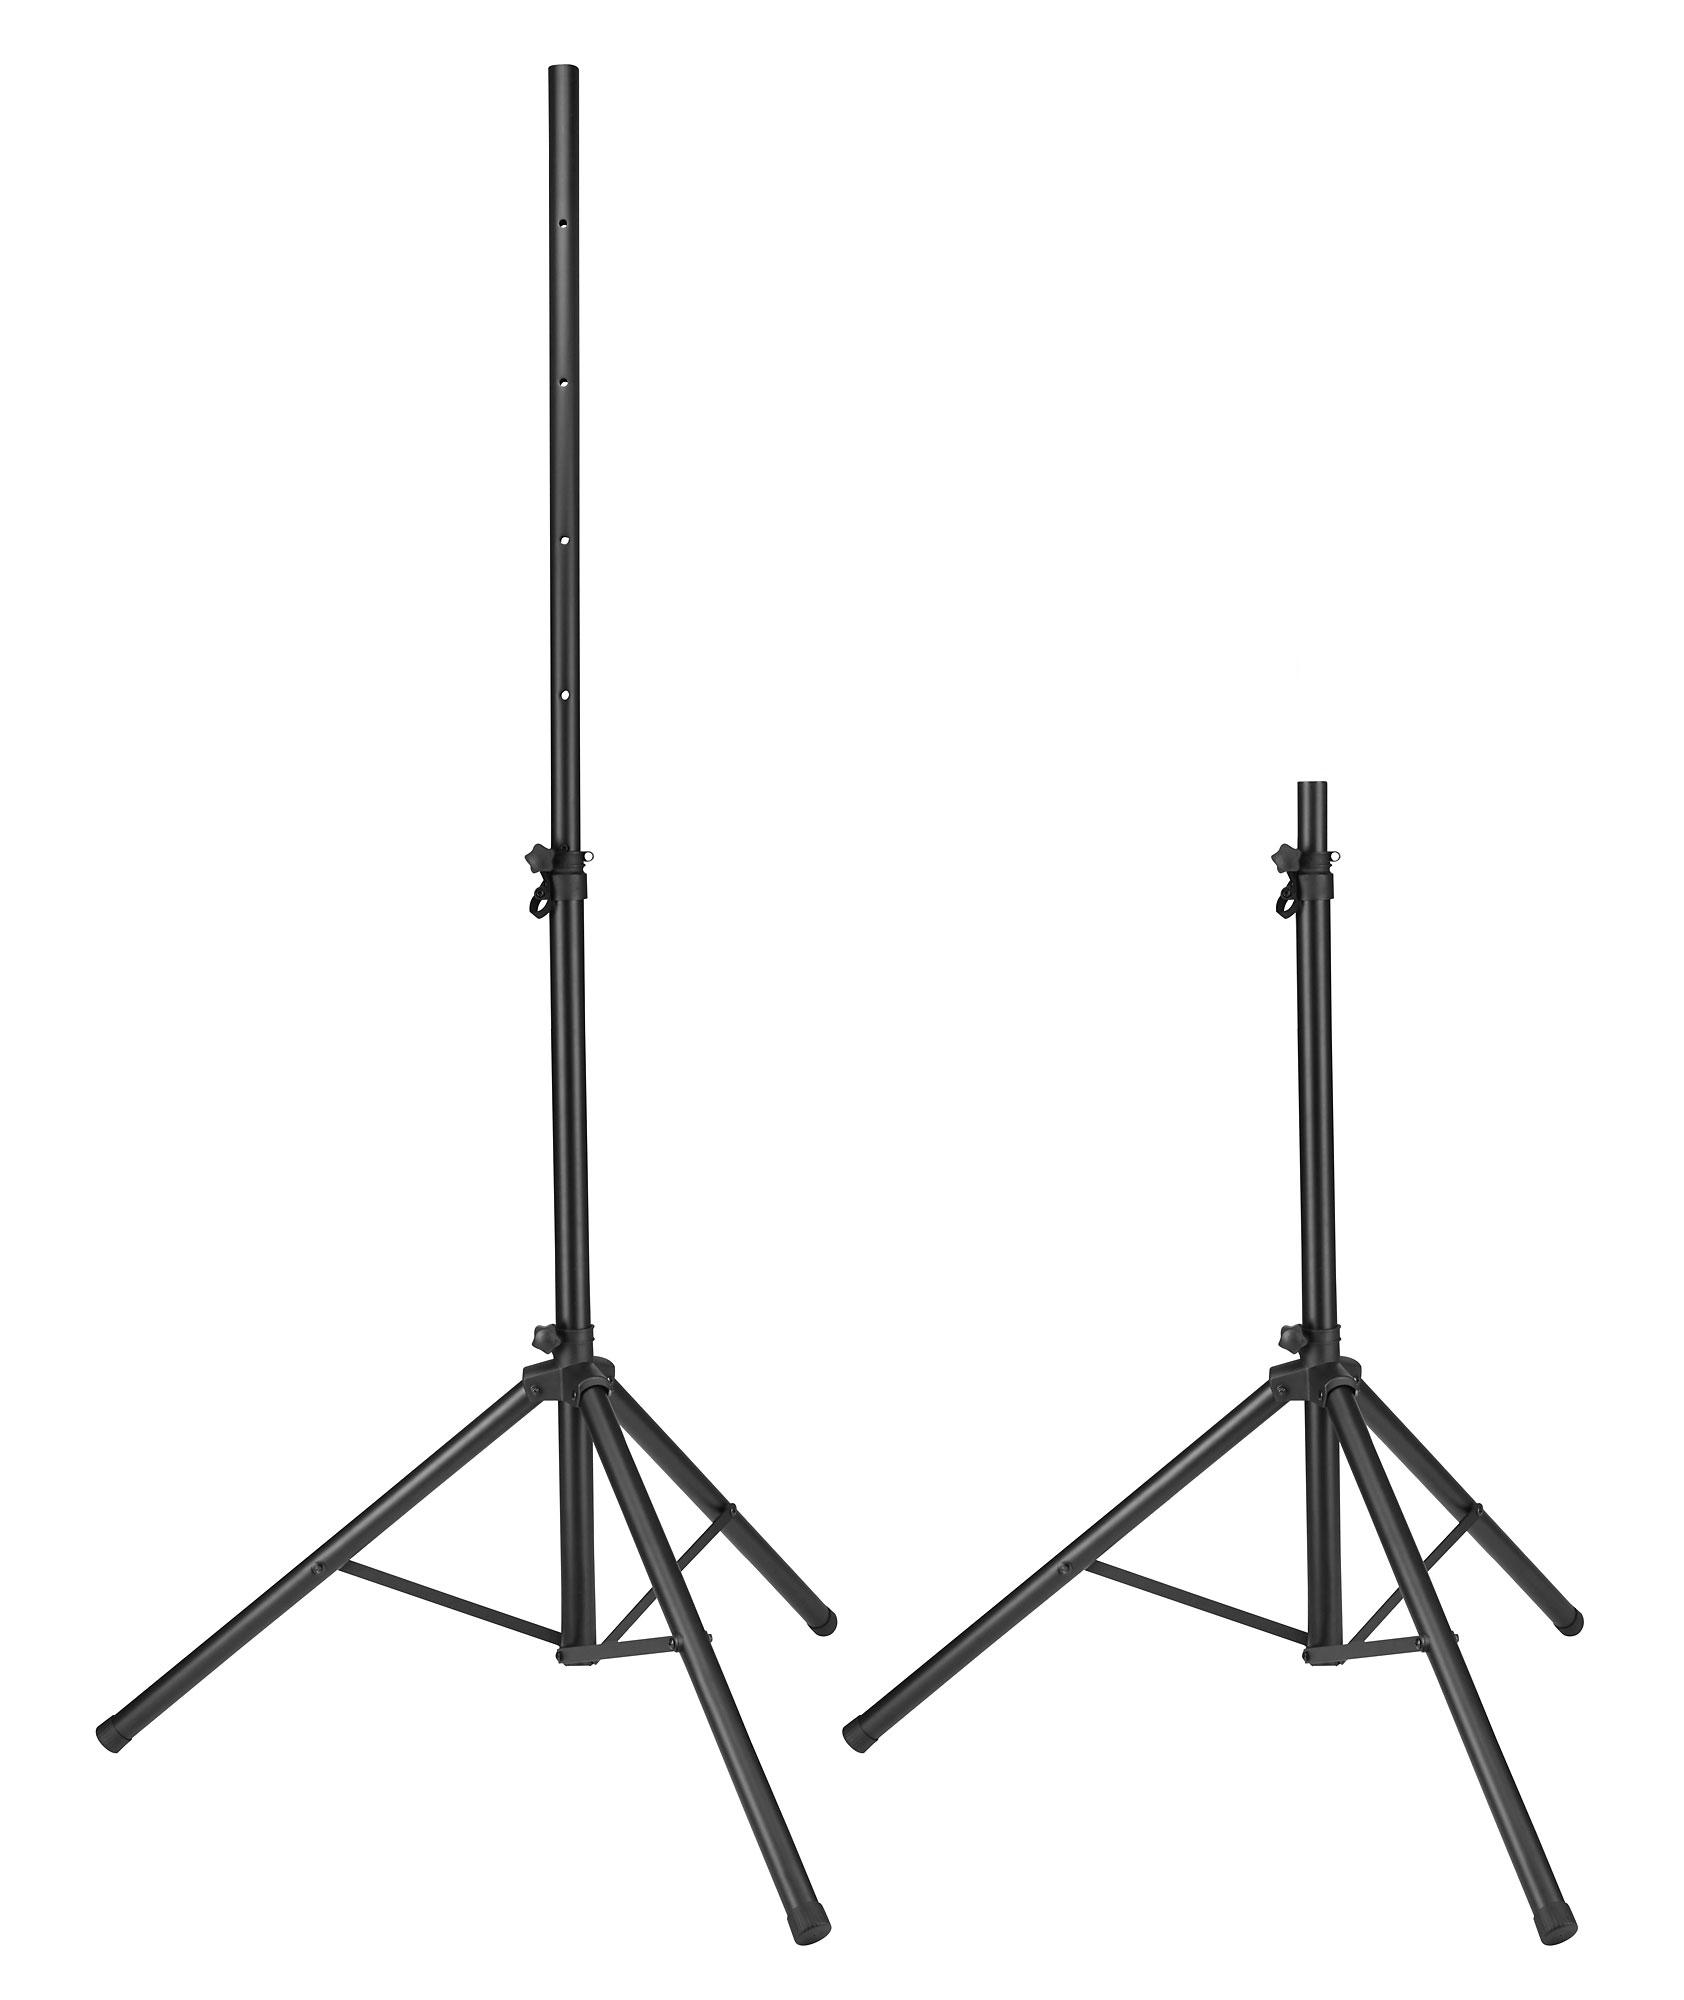 Pronomic Sps 1a Speaker Stand Aluminum Set With Bag